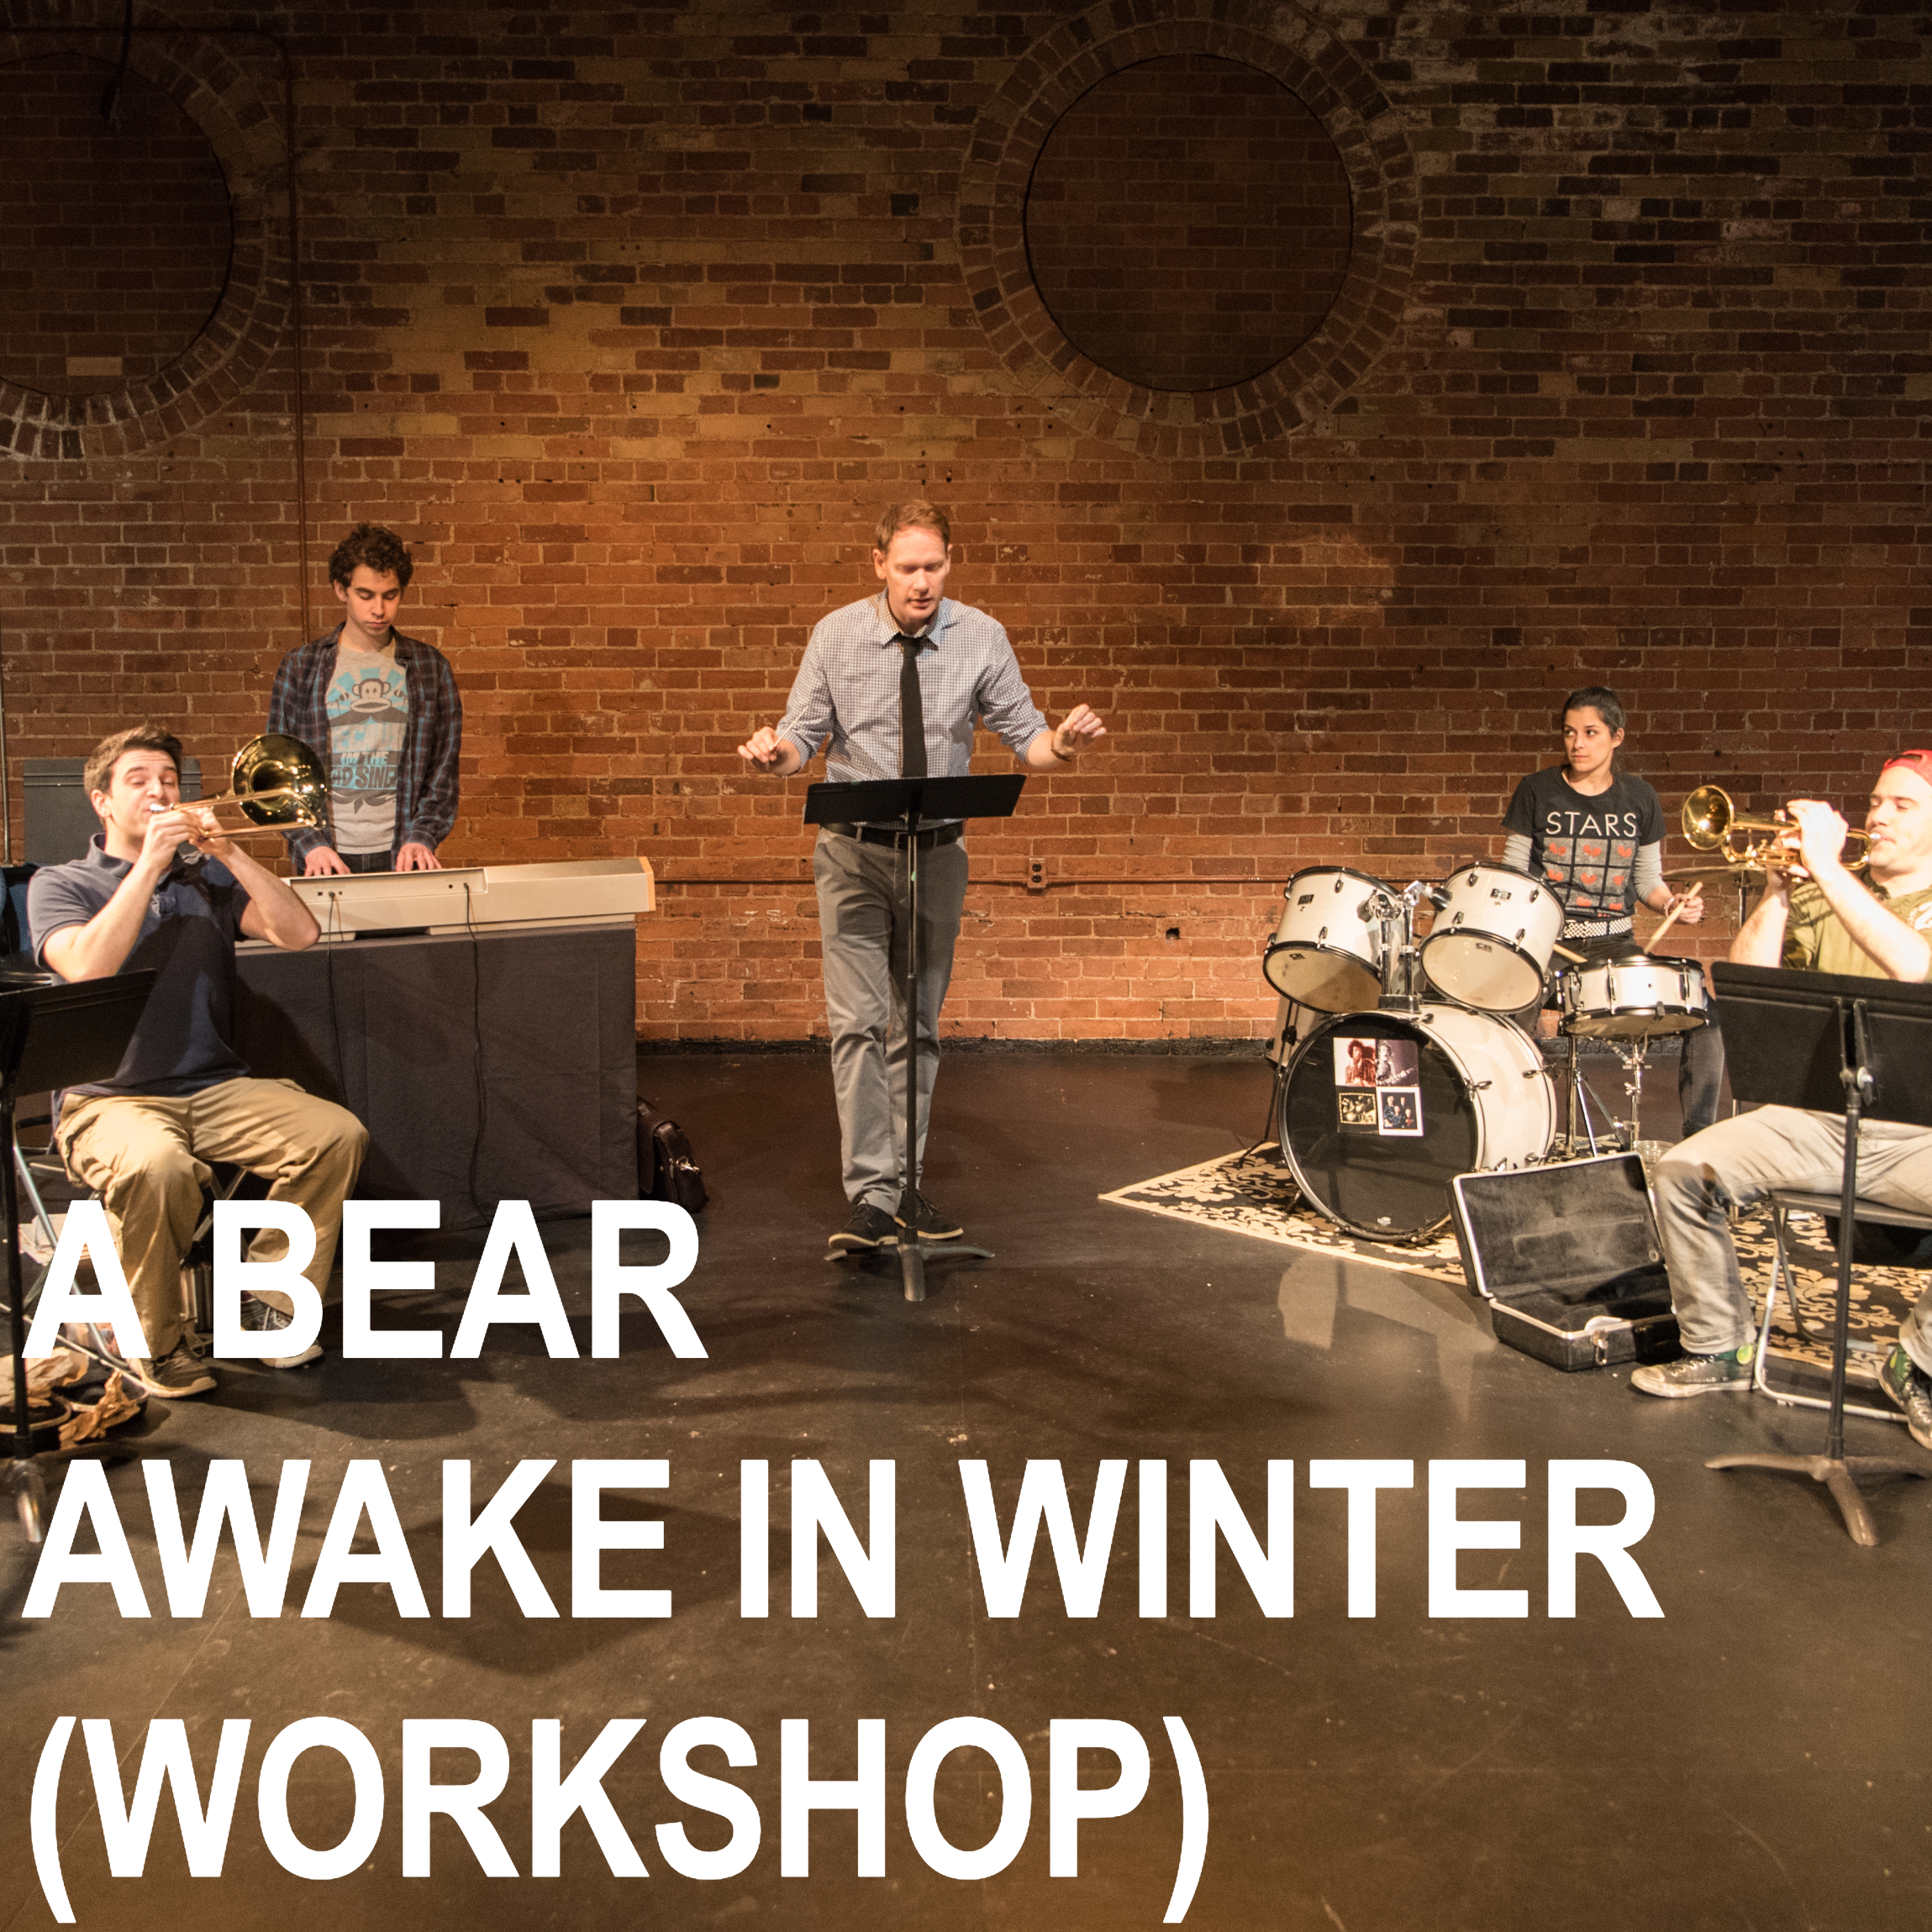 BearWorkshopSquareSpace.png